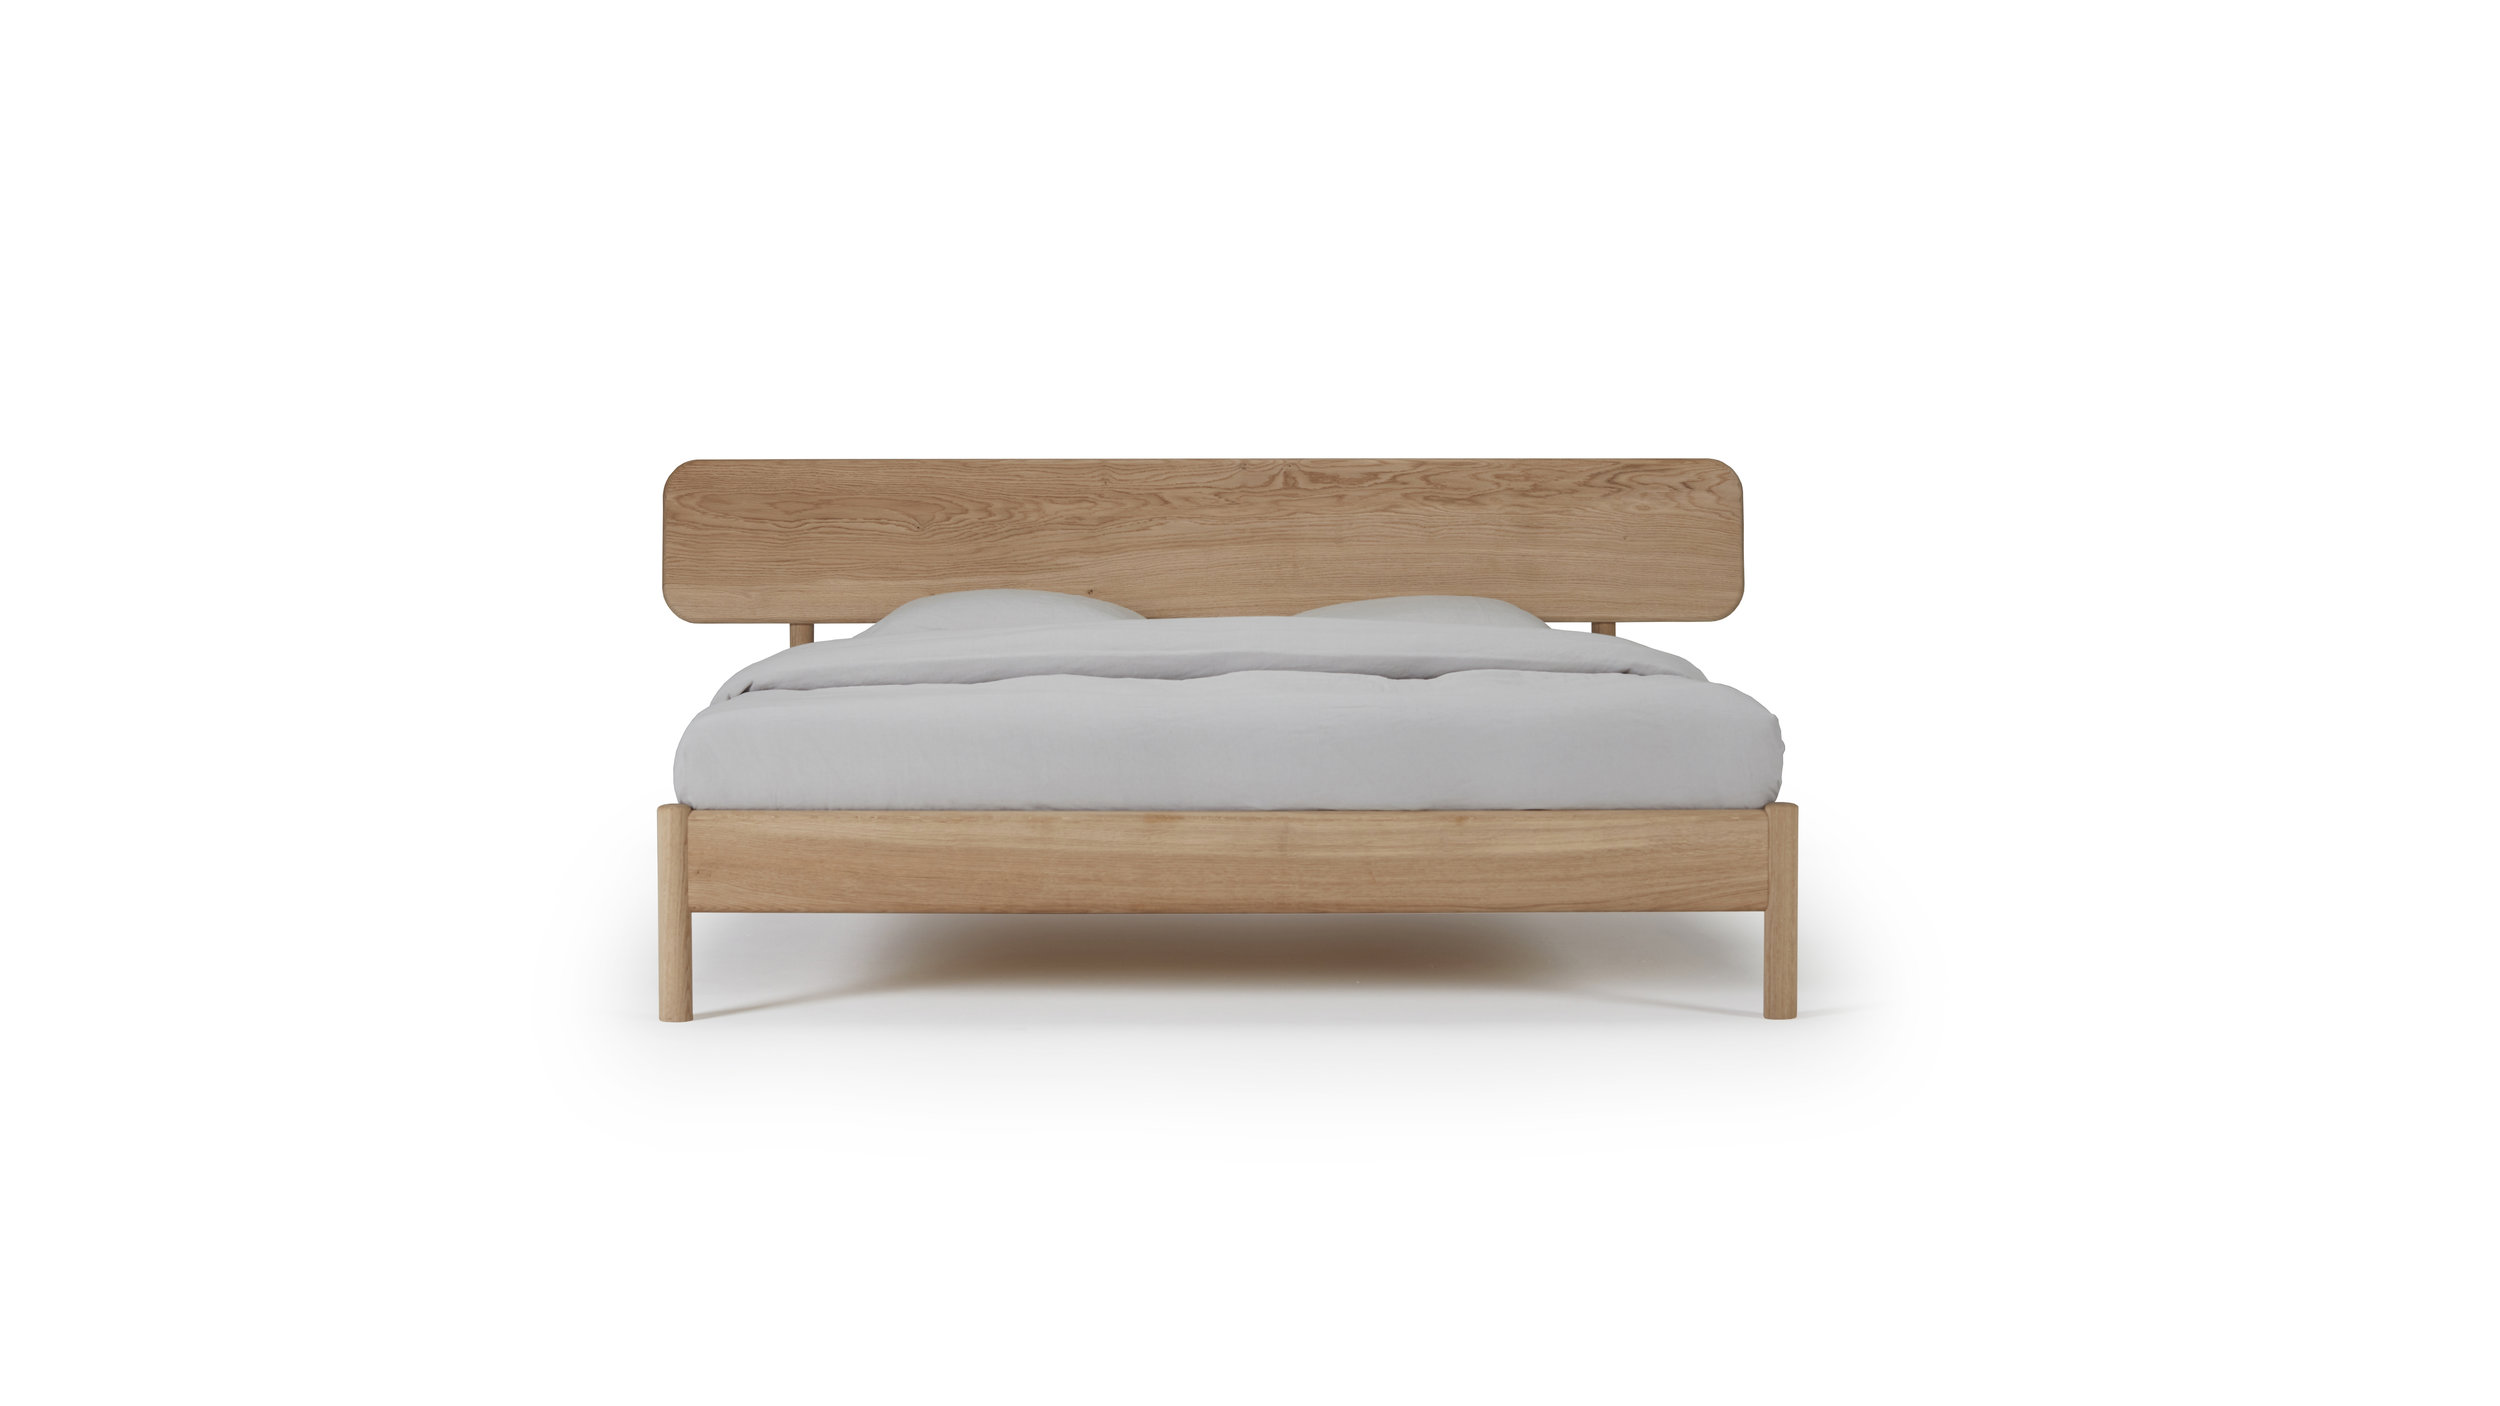 13 - ALKEN BED - RE NATURE BEDS - DESIGN BY OLIVER & LUKAS WEISSKROGH.jpg